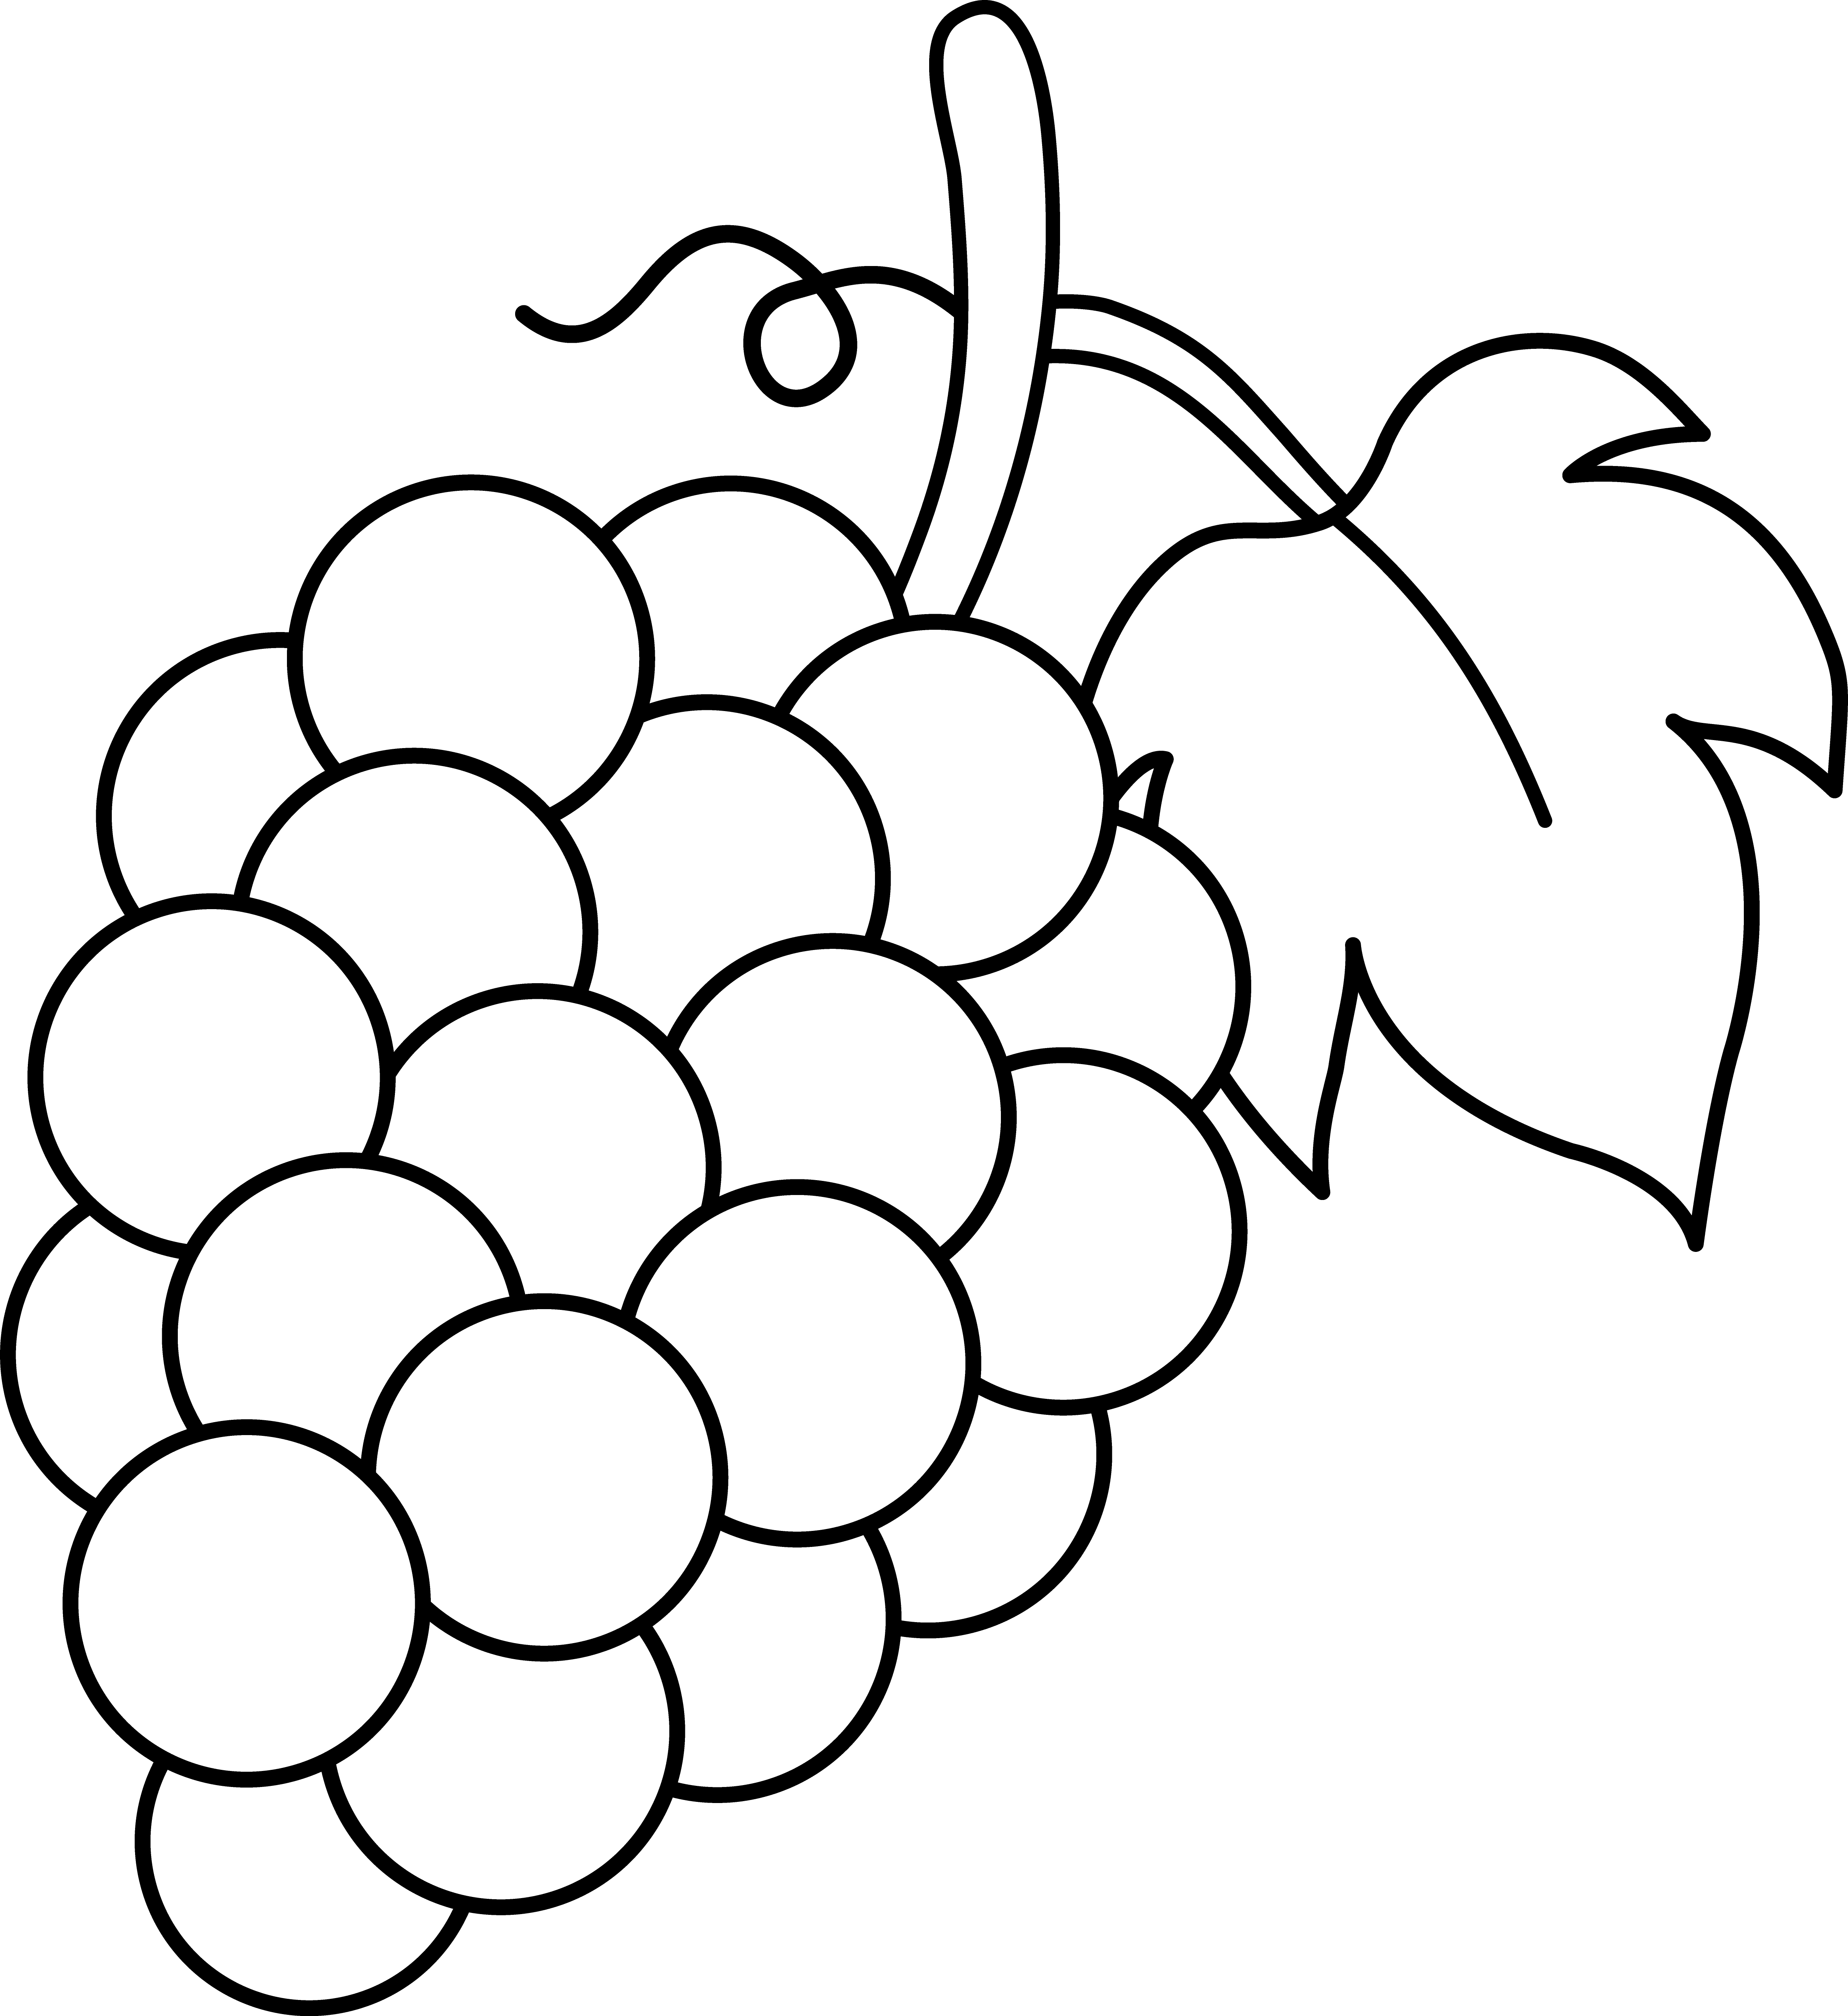 Fruits clipart black and white clipart images gallery for free.